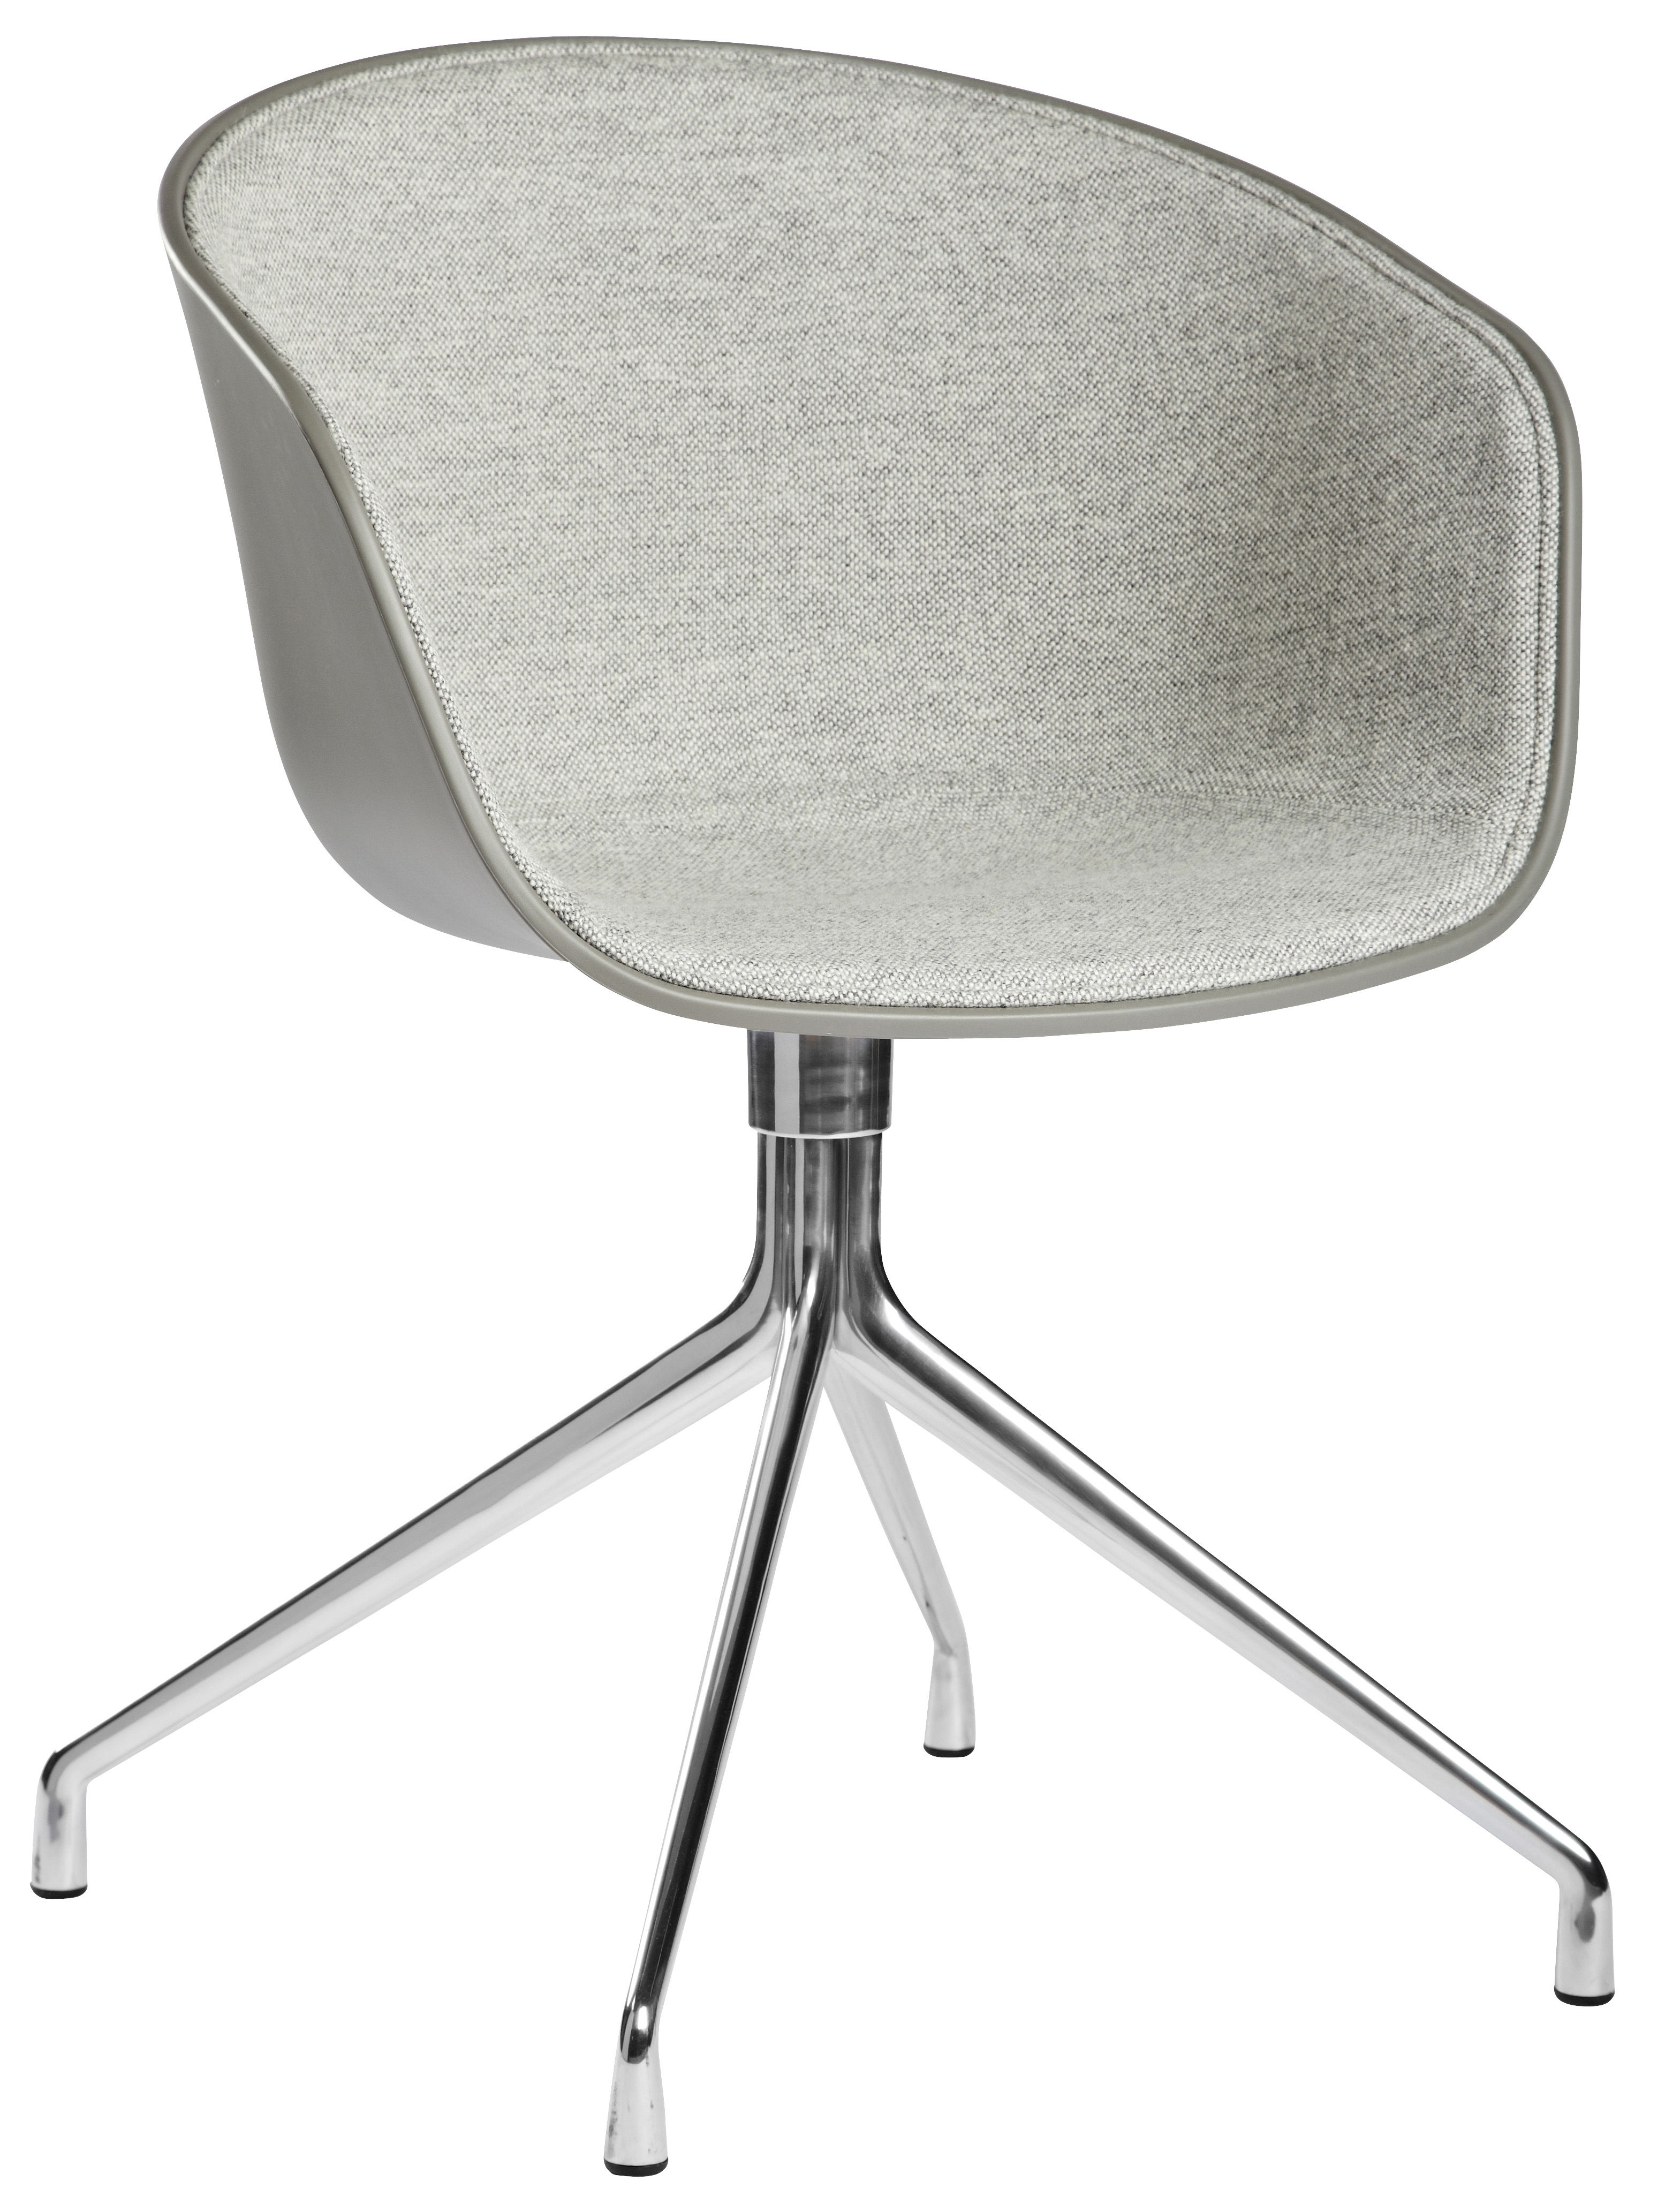 about a chair swivel armchair light grey fabric by hay. Black Bedroom Furniture Sets. Home Design Ideas